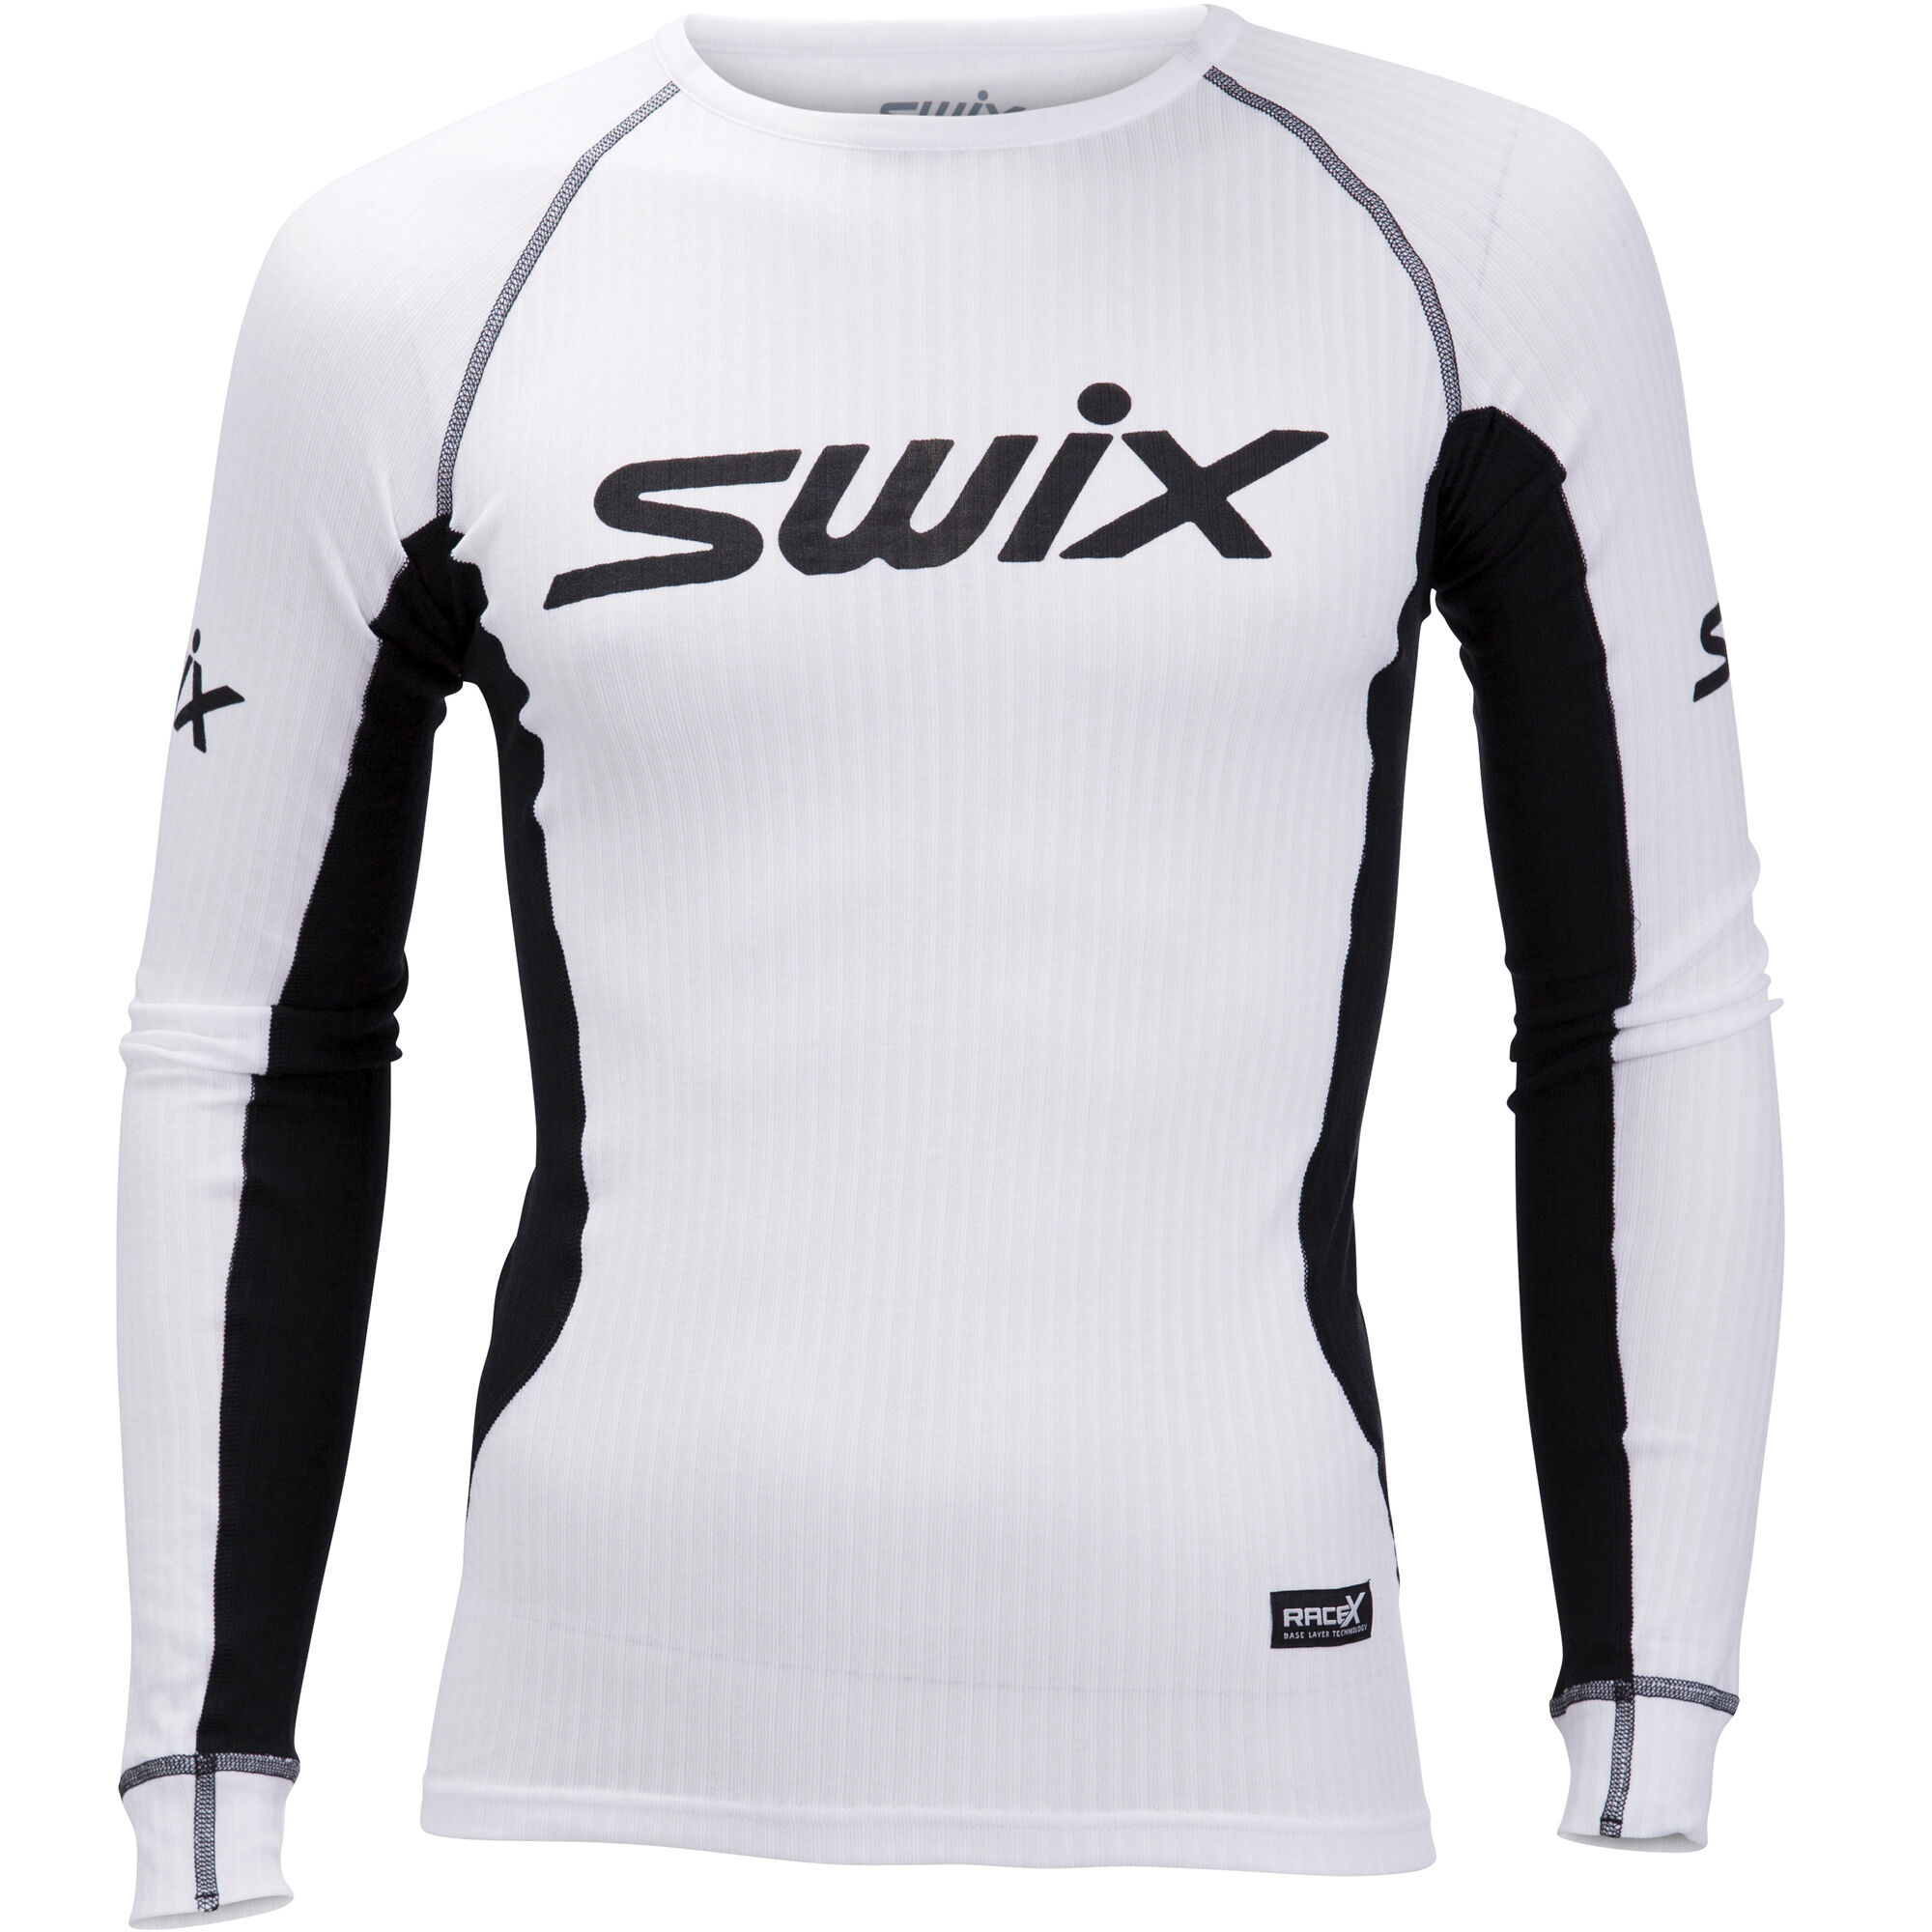 Meubles Challenger Welcome To Swix